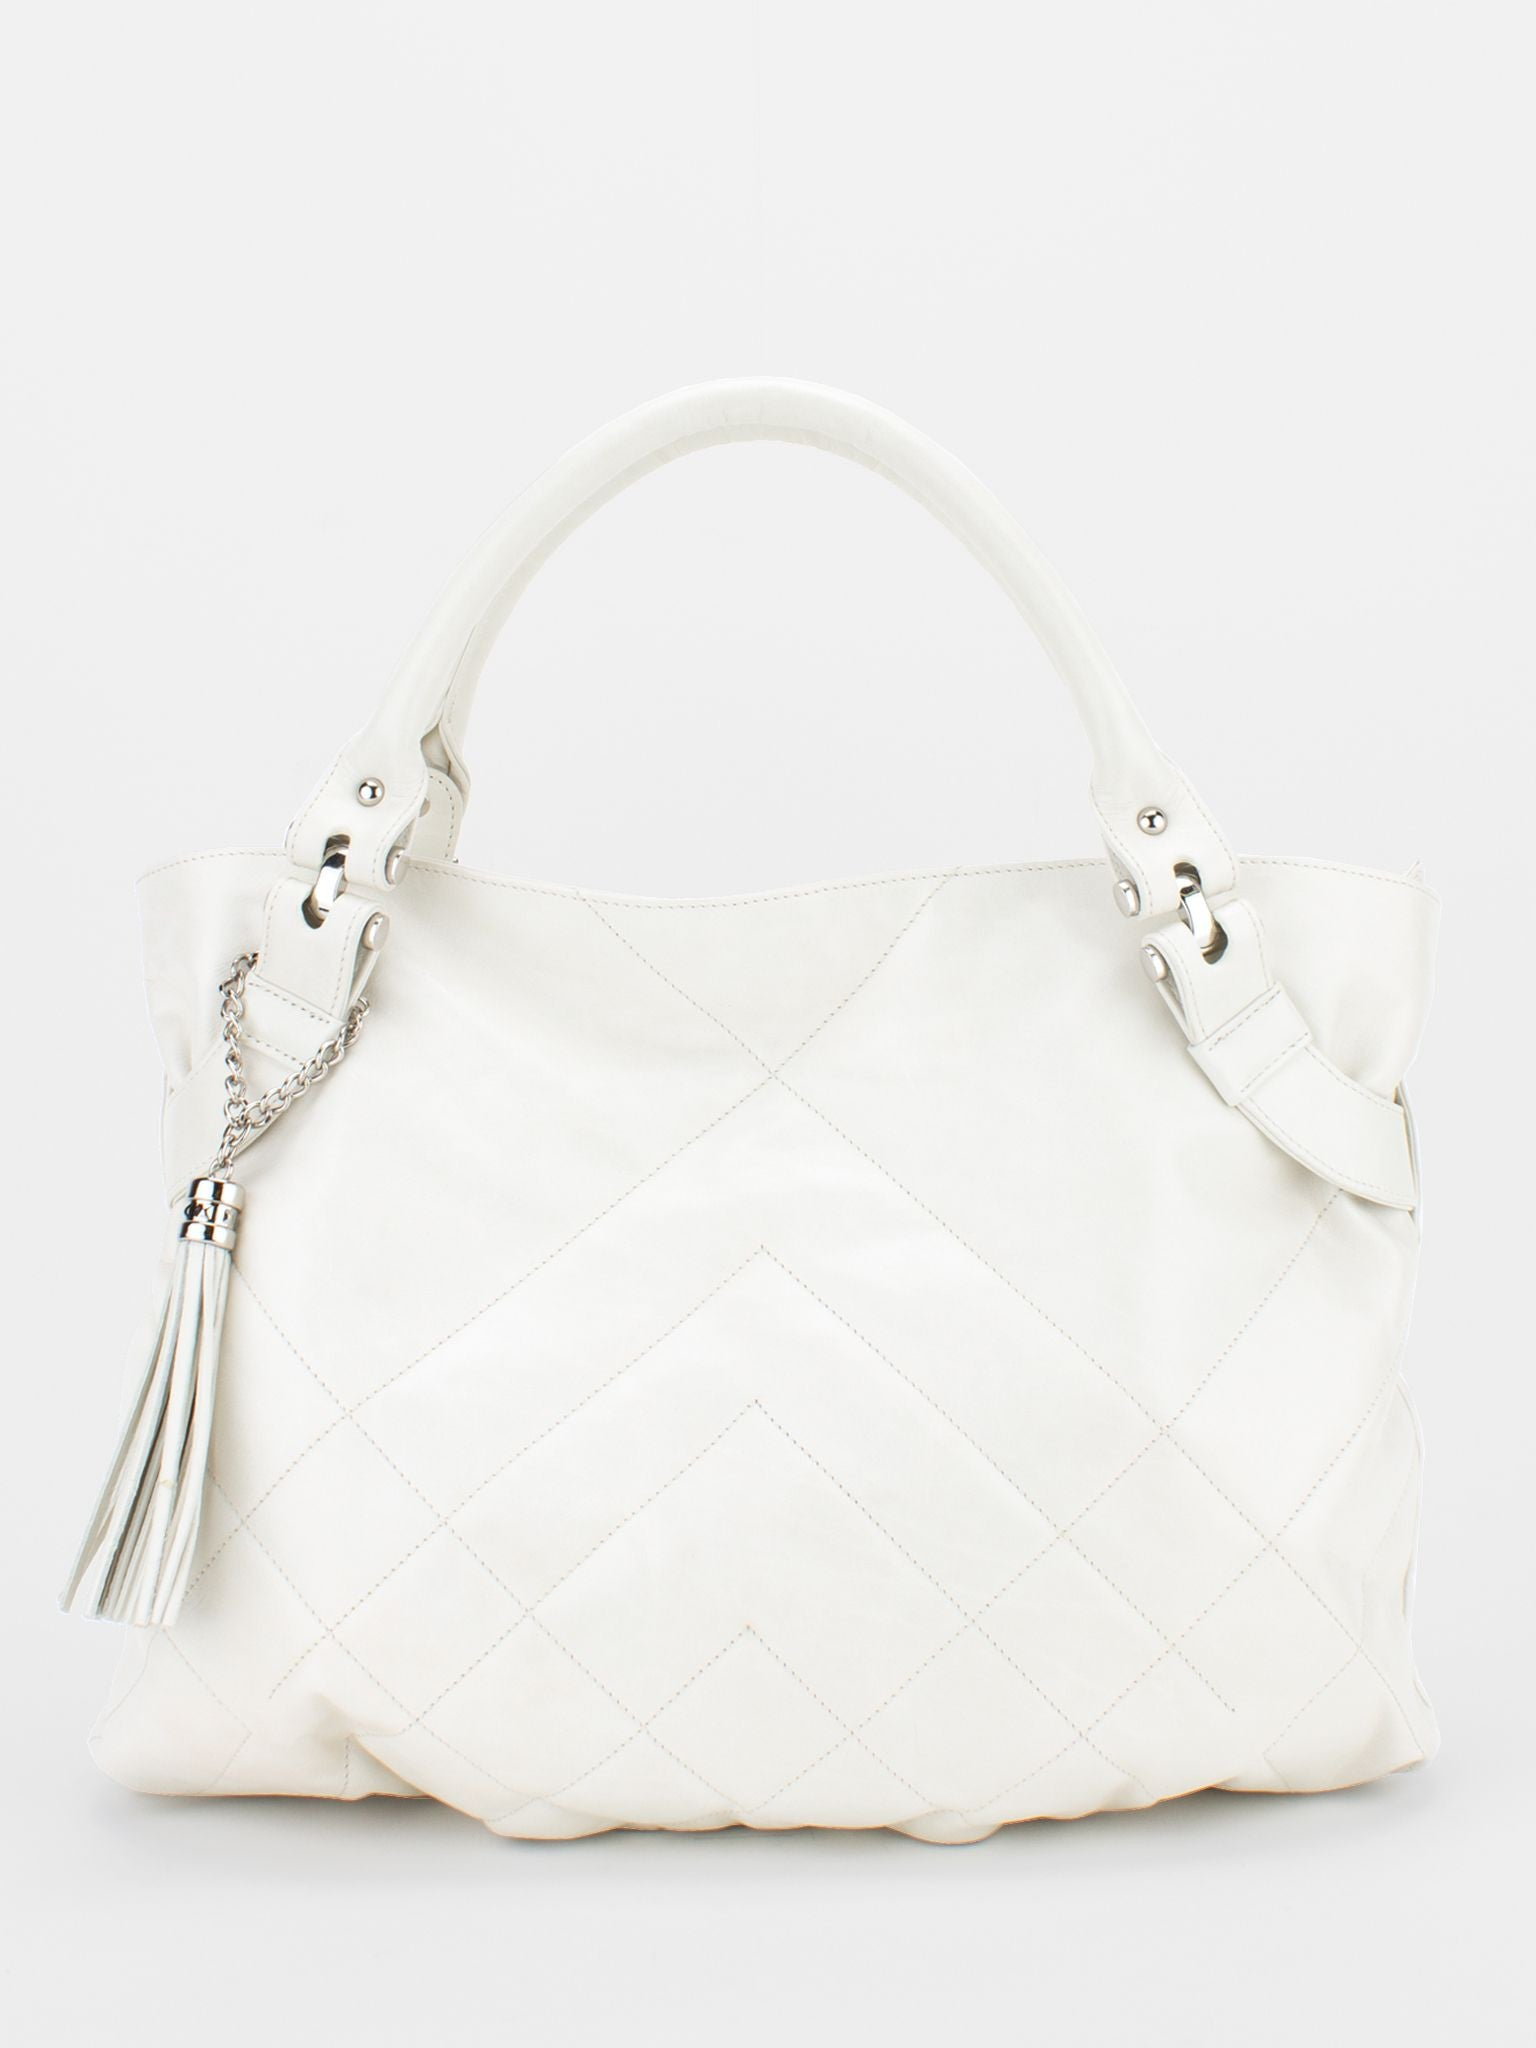 Carol Glazed Leather Tote - Off-White - Soprano Handbags